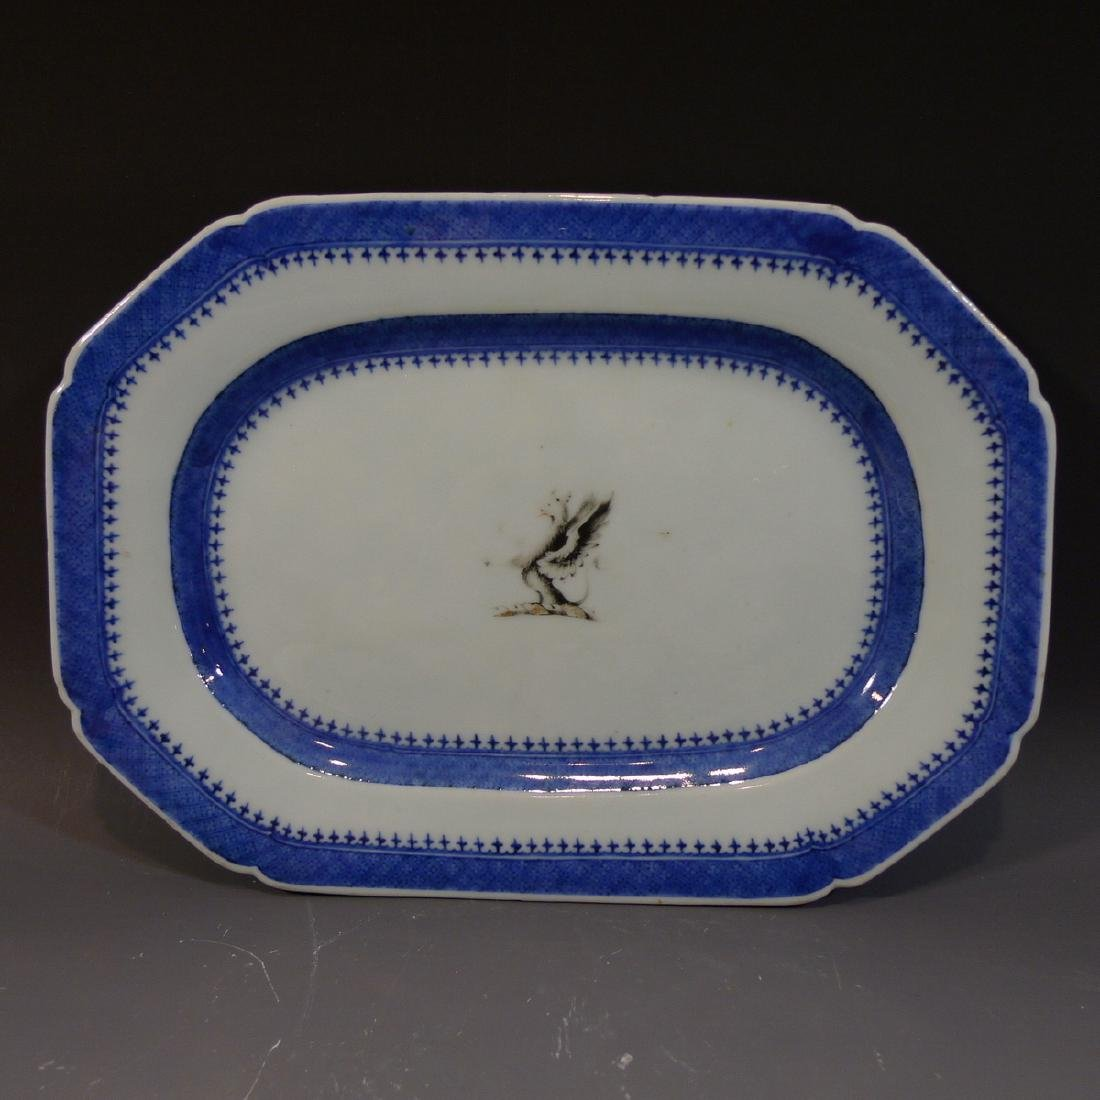 CHINESE ANTIQUE ARMORIAL PORCELAIN PLATTER - 18TH